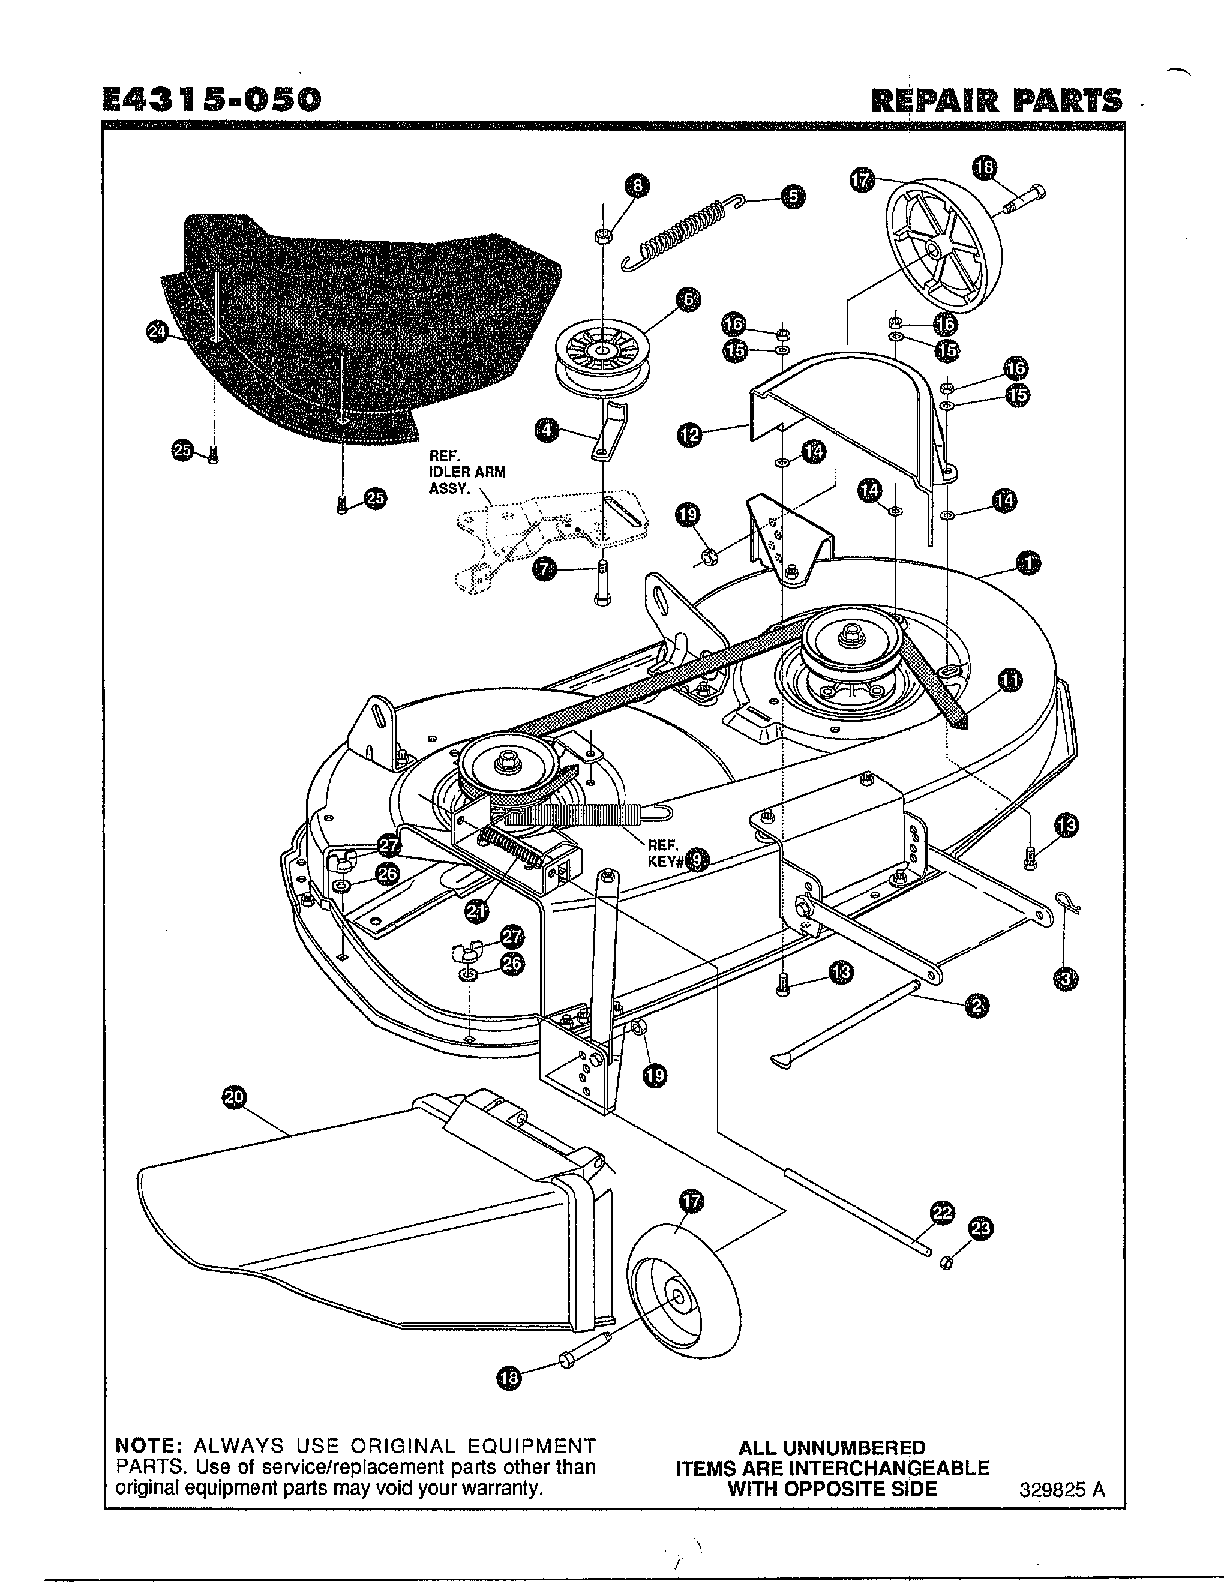 hight resolution of john deere lawn tractor wiring diagram for scott wiring diagram for ford tractor wiring diagram scott s lawn mower parts search scott s lawn mower parts